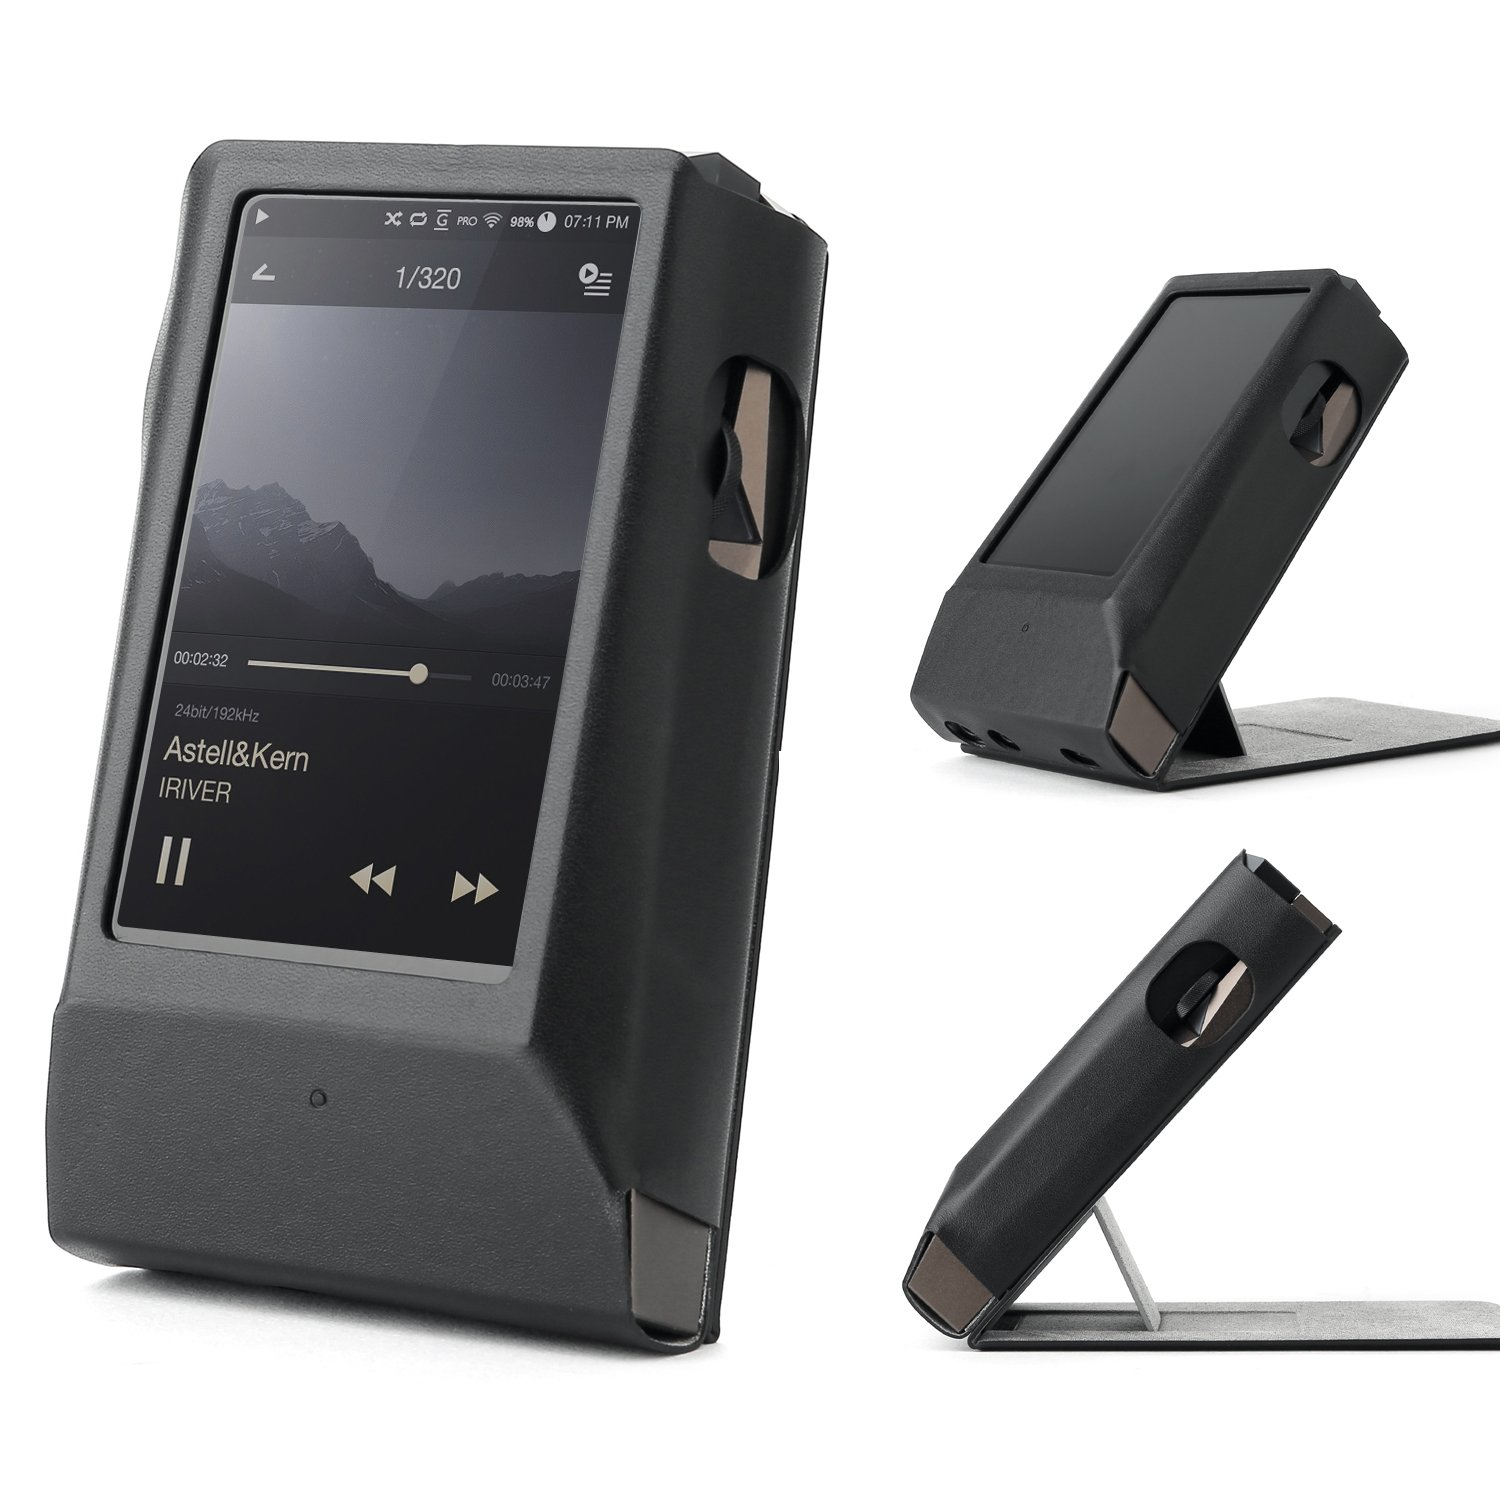 Astell&Kern AK300 AMP / AK320 AMP Hand Crafted MITER Leather Case Cover [Patented Stand Case] astell&Kern Leather case (Black)